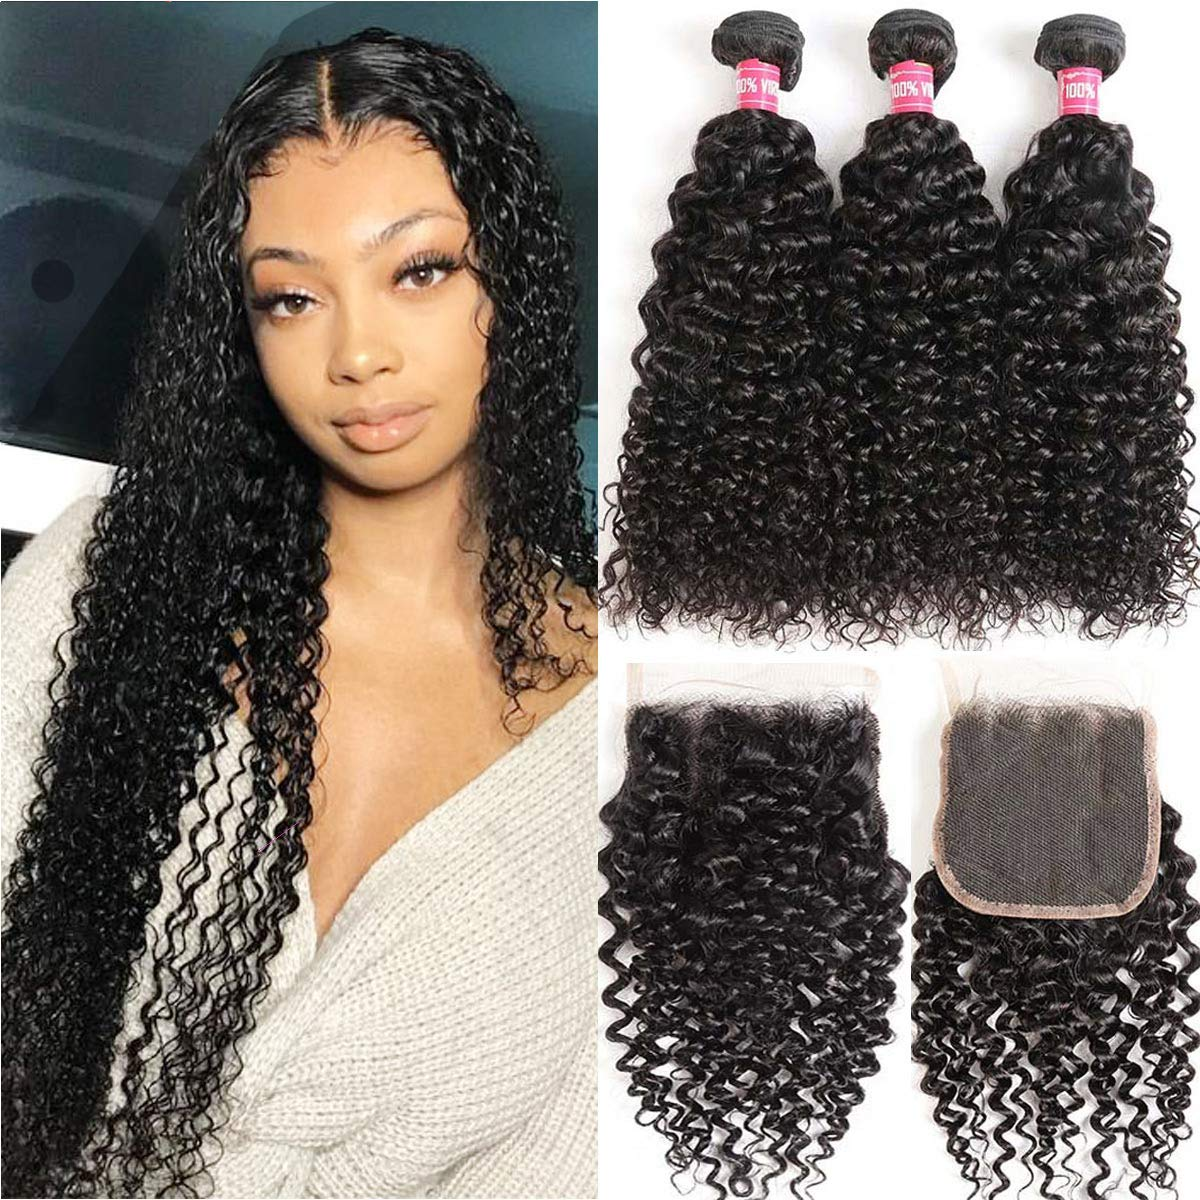 WENYU Hair Brazilian Virgin Curly Hair 3 Bundles with Lace Closure Free Part 100% Brazilian Kinky Curly Human Hair Bundles with 4x4 Lace Closure Natural Black (22 24 26+20Free Part)